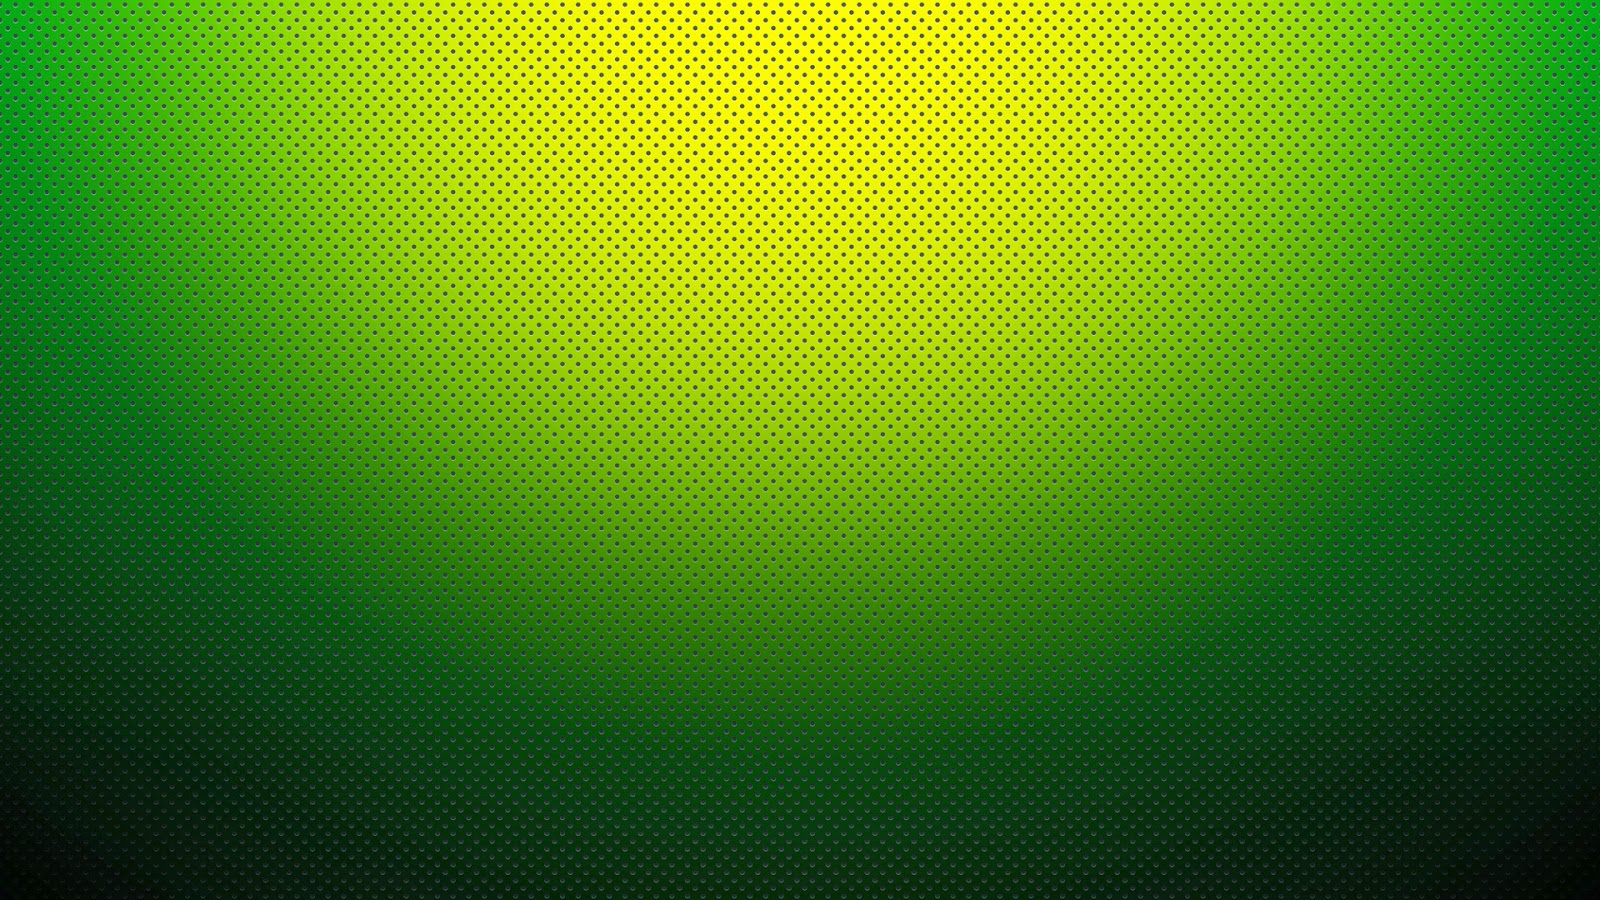 Green+yellow gradient-design-pattern-background-images-photoshop-PSD.jpg